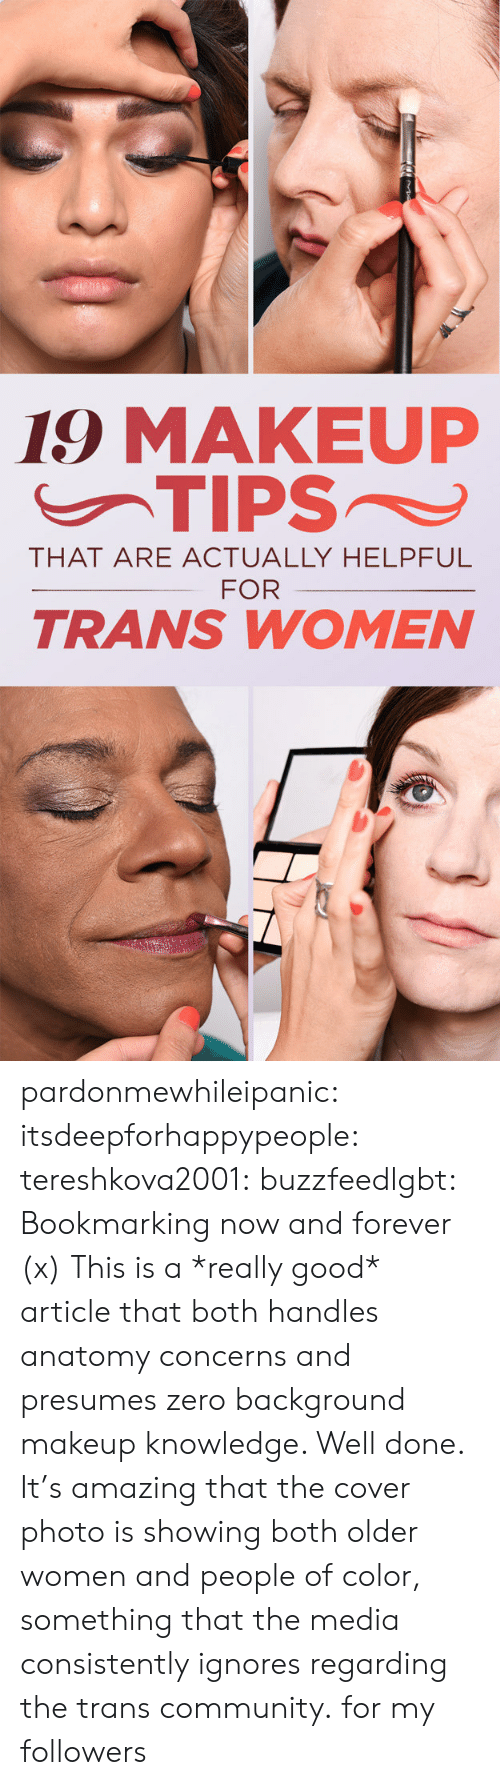 cover photo: 19 MAKEUP  THAT ARE ACTUALLY HELPFUL  FOR  TRANS WOMEN pardonmewhileipanic:  itsdeepforhappypeople:  tereshkova2001:  buzzfeedlgbt:  Bookmarking now and forever (x)  This is a *really good* article that both handles anatomy concerns and presumes zero background makeup knowledge. Well done.  It's amazing that the cover photo is showing both older women and people of color, something that the media consistently ignores regarding the trans community.  for my followers